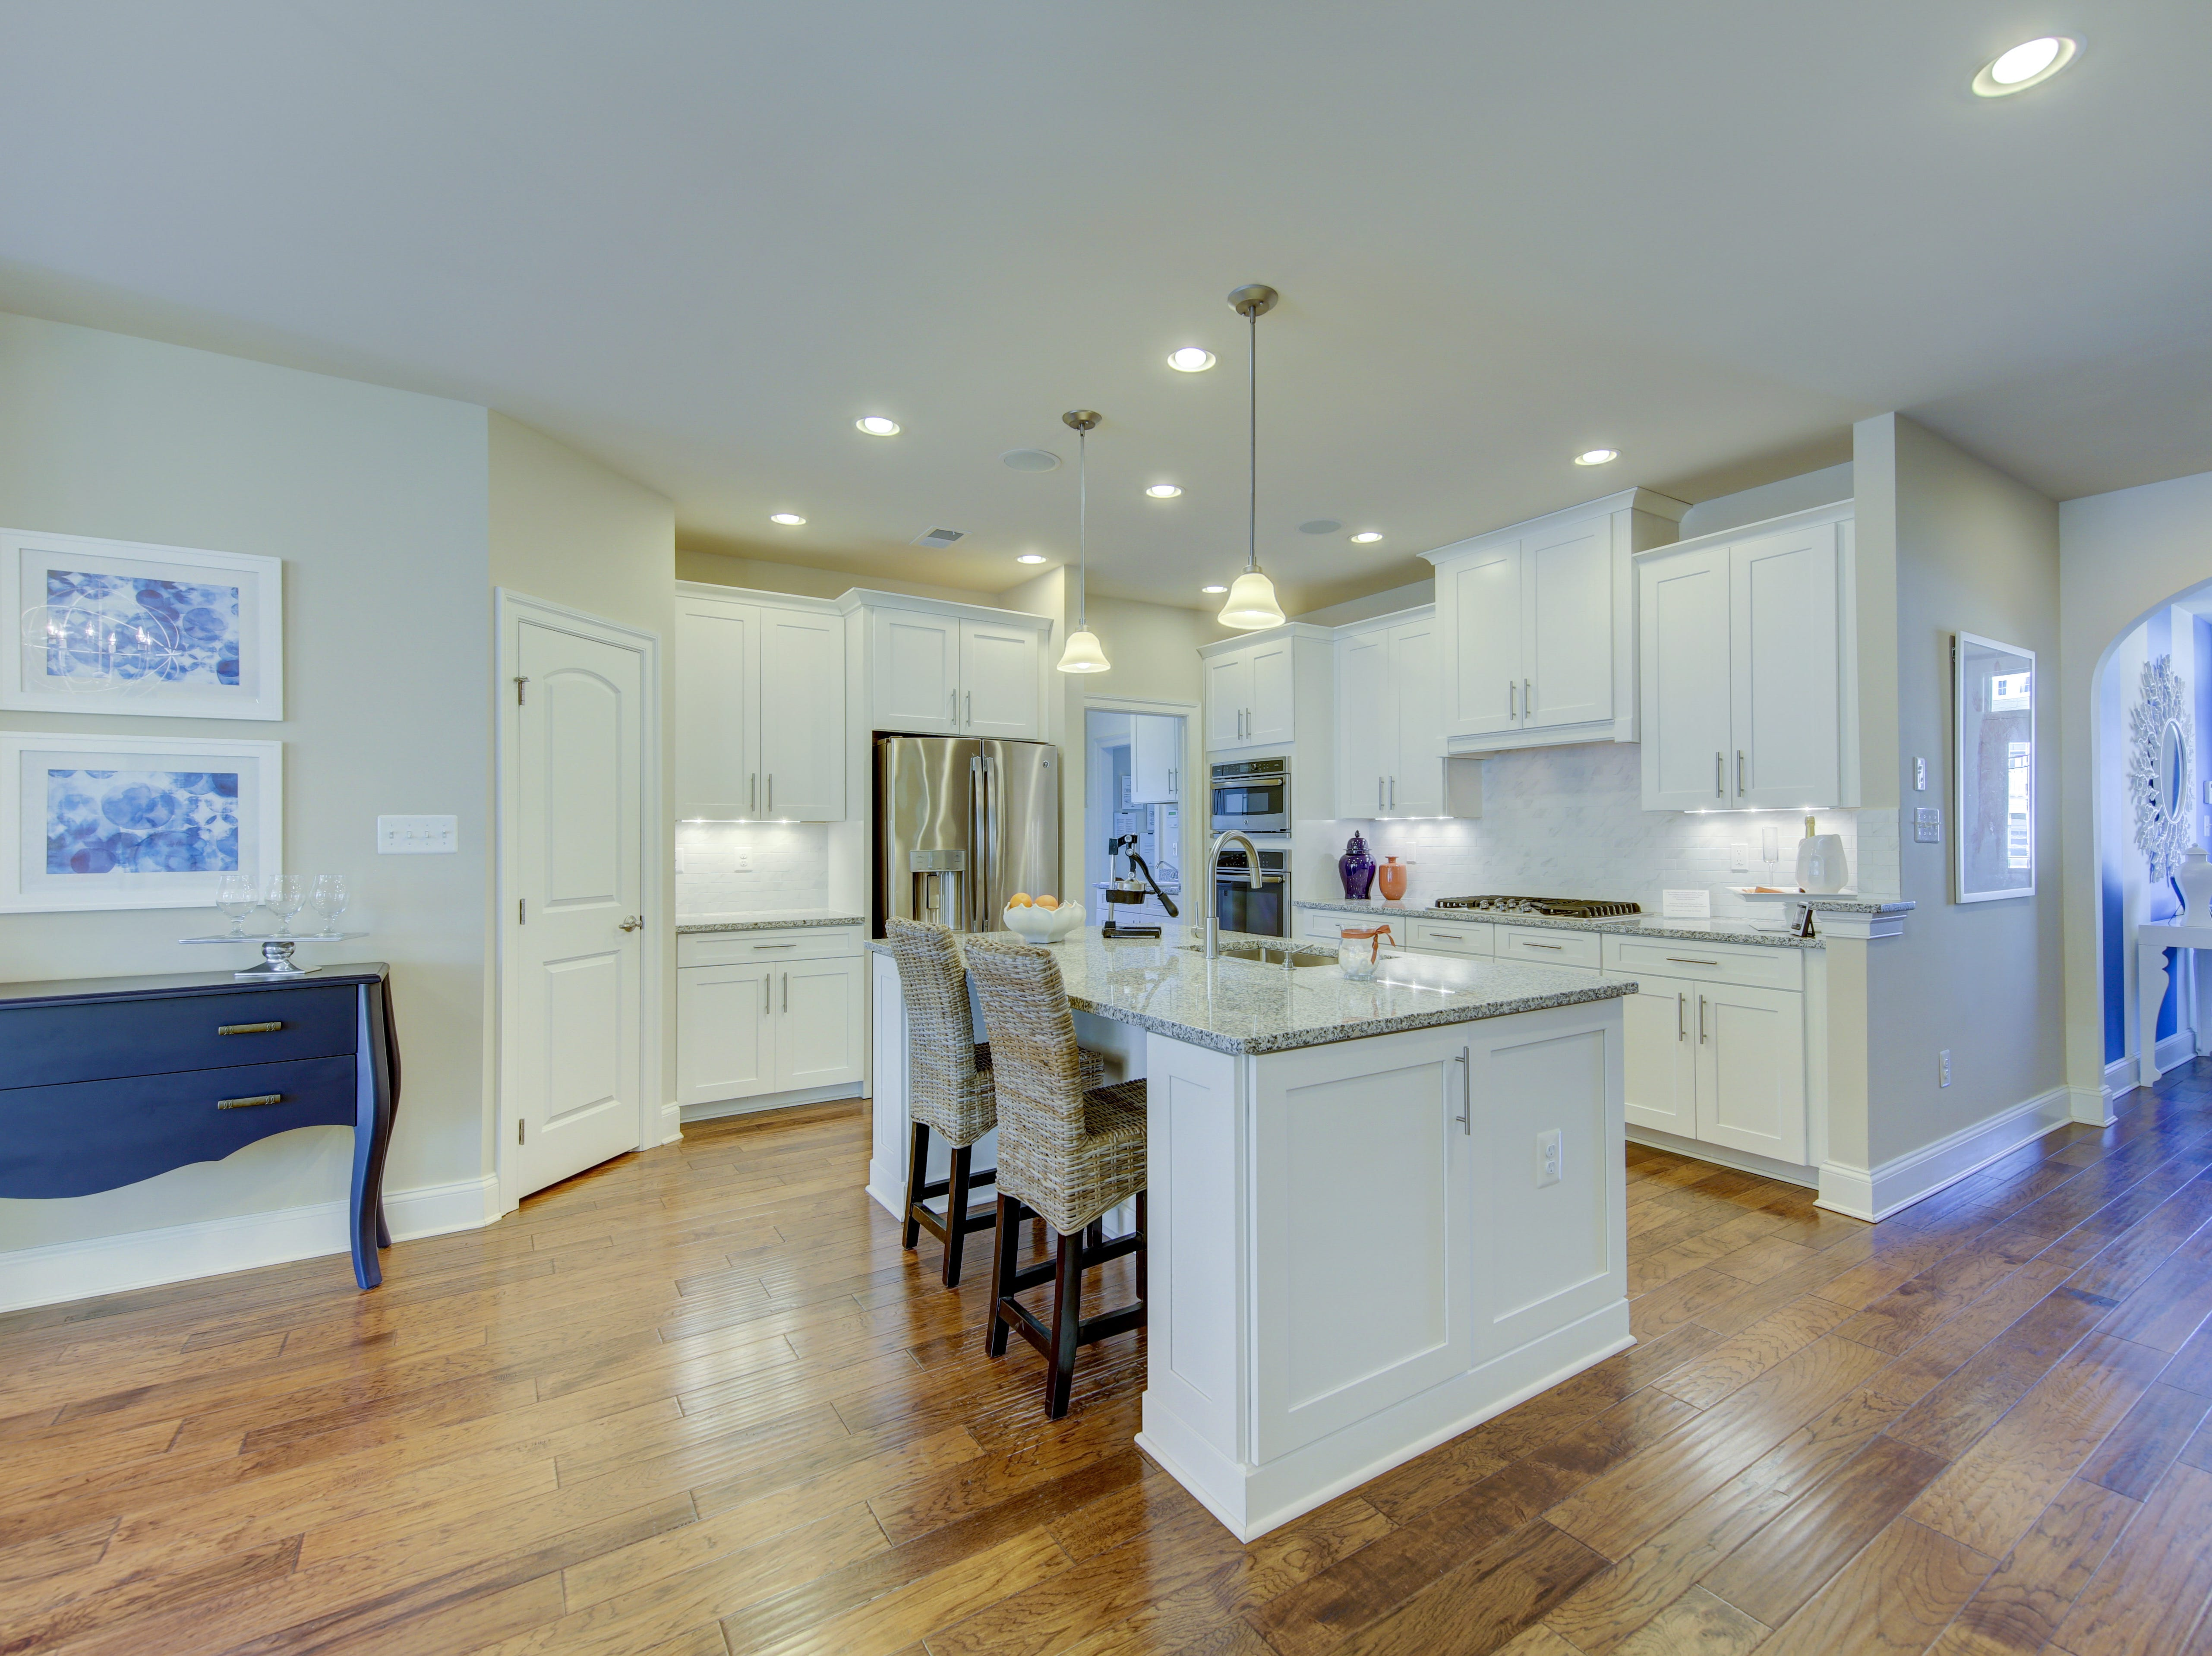 The open kitchen offers granite countertops, an upgrade, and stalnless steels appliances in the model home in The Overlook at Selbyville.